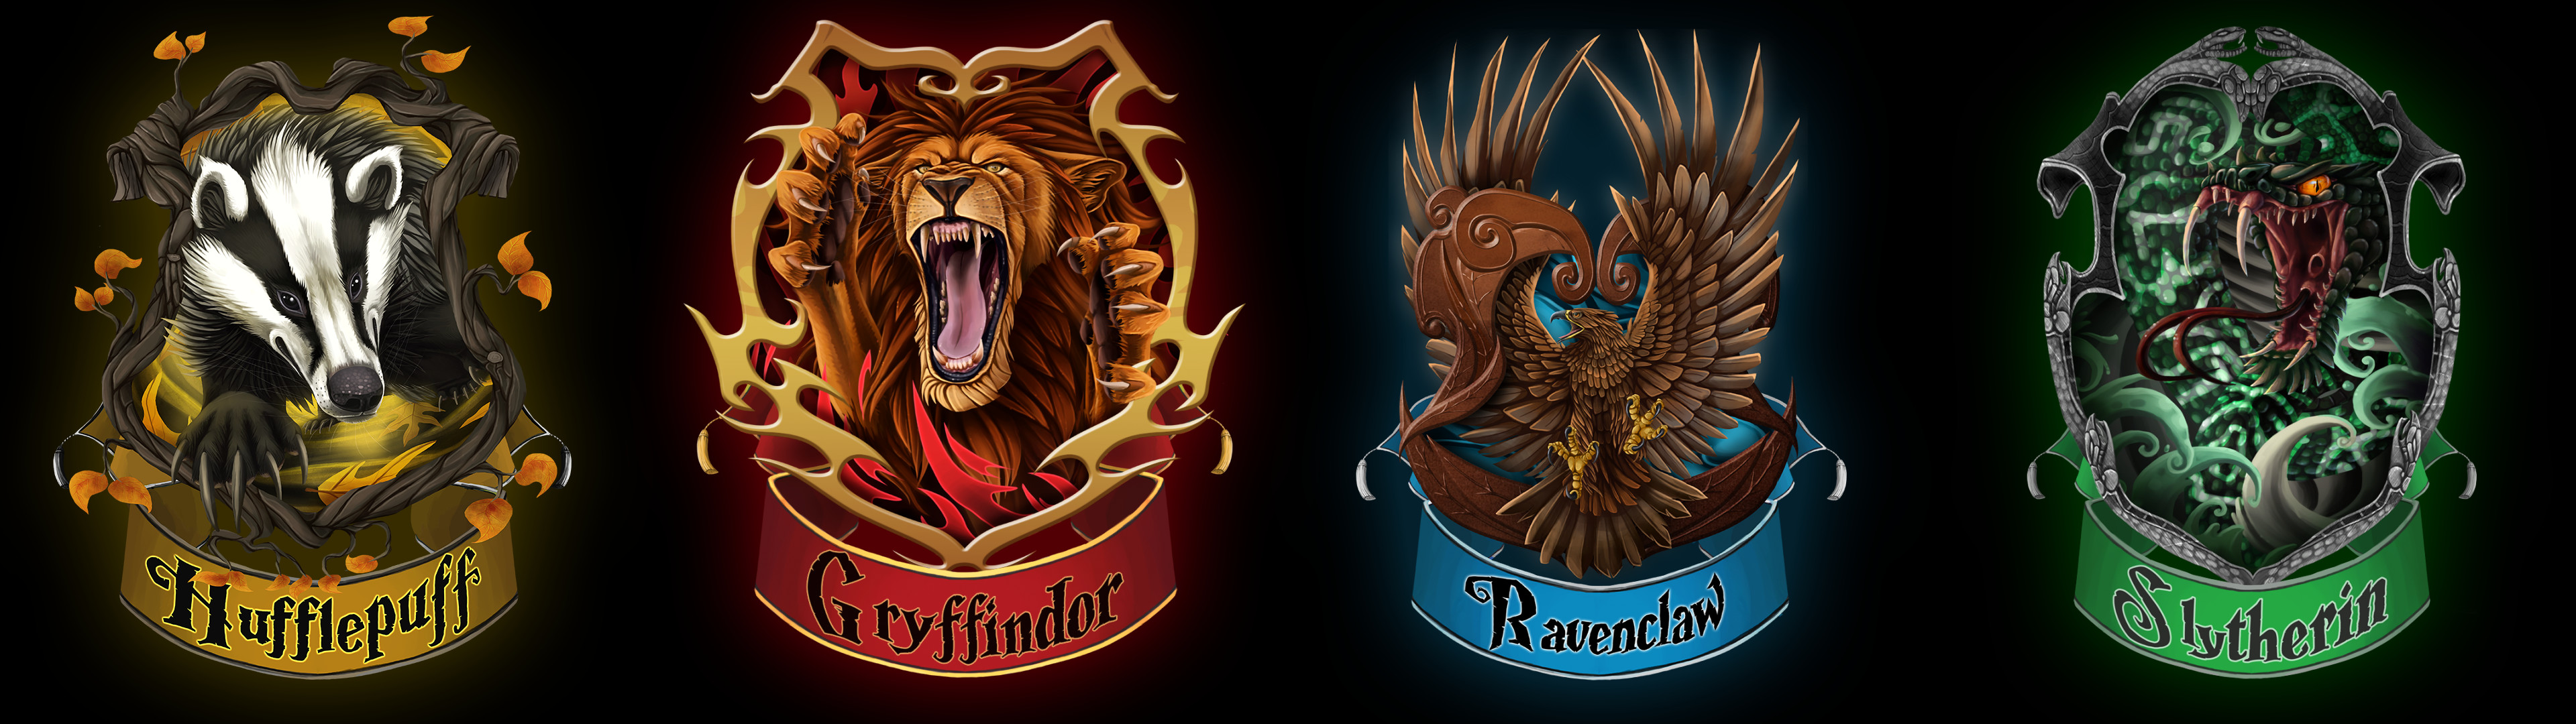 … Fantastic What Is My Harry Potter House Windows 8 Wallpaper HD 1366×768  Free Download